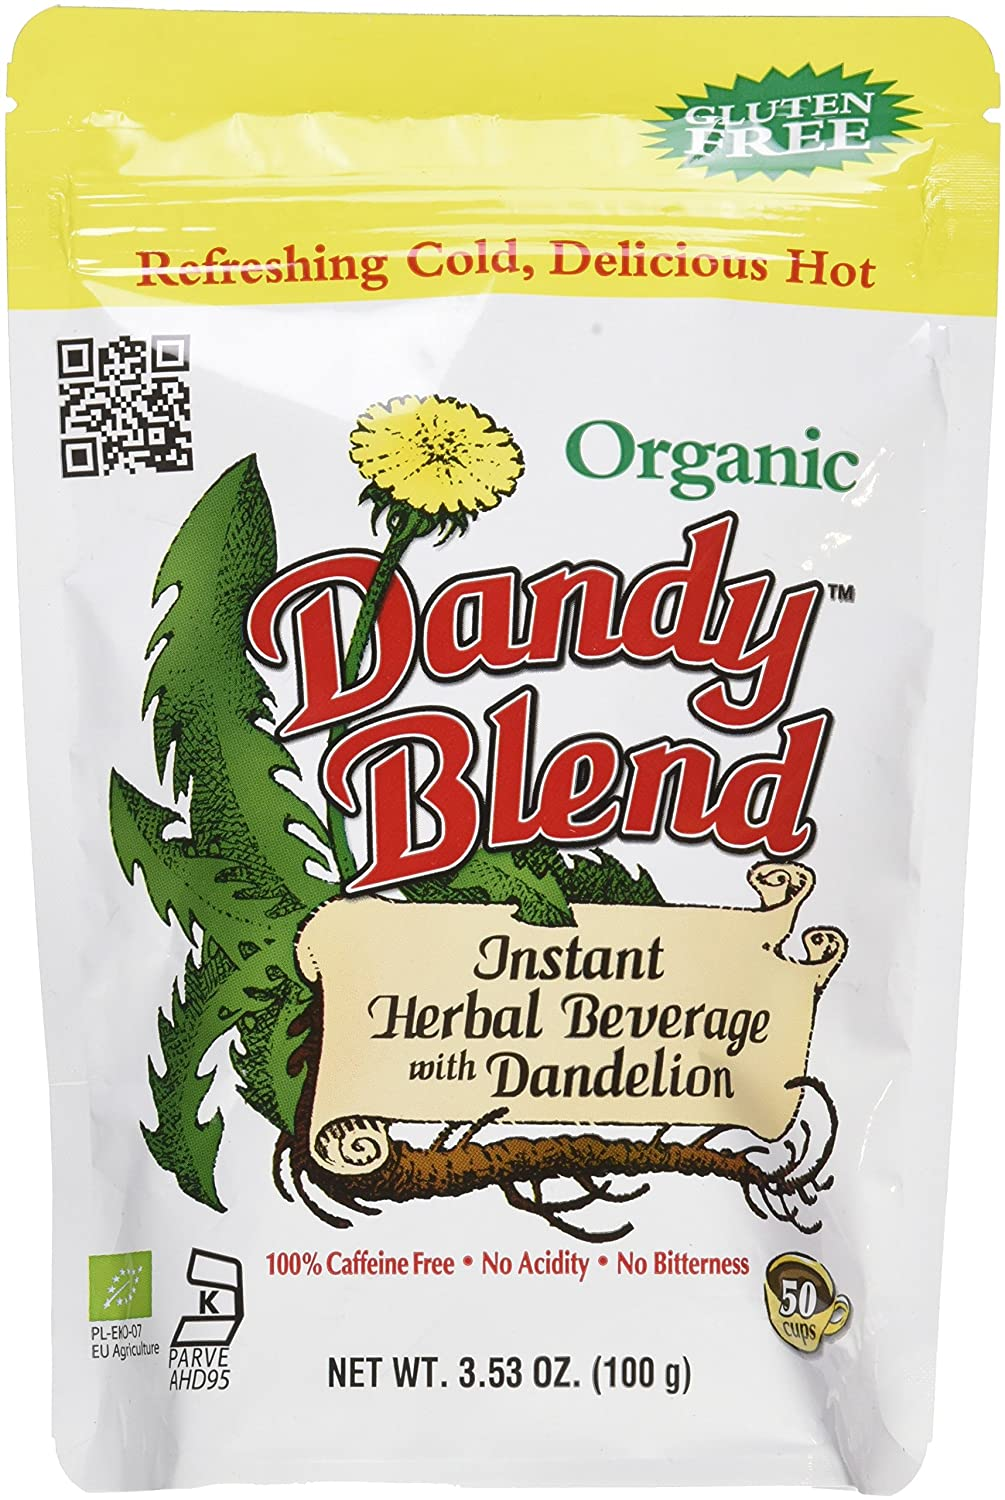 50 Cup Bag of Certified Organic Dandy Blend Instant Herbal Beverage with Dandelion, 3.53 oz. (100g) Bag